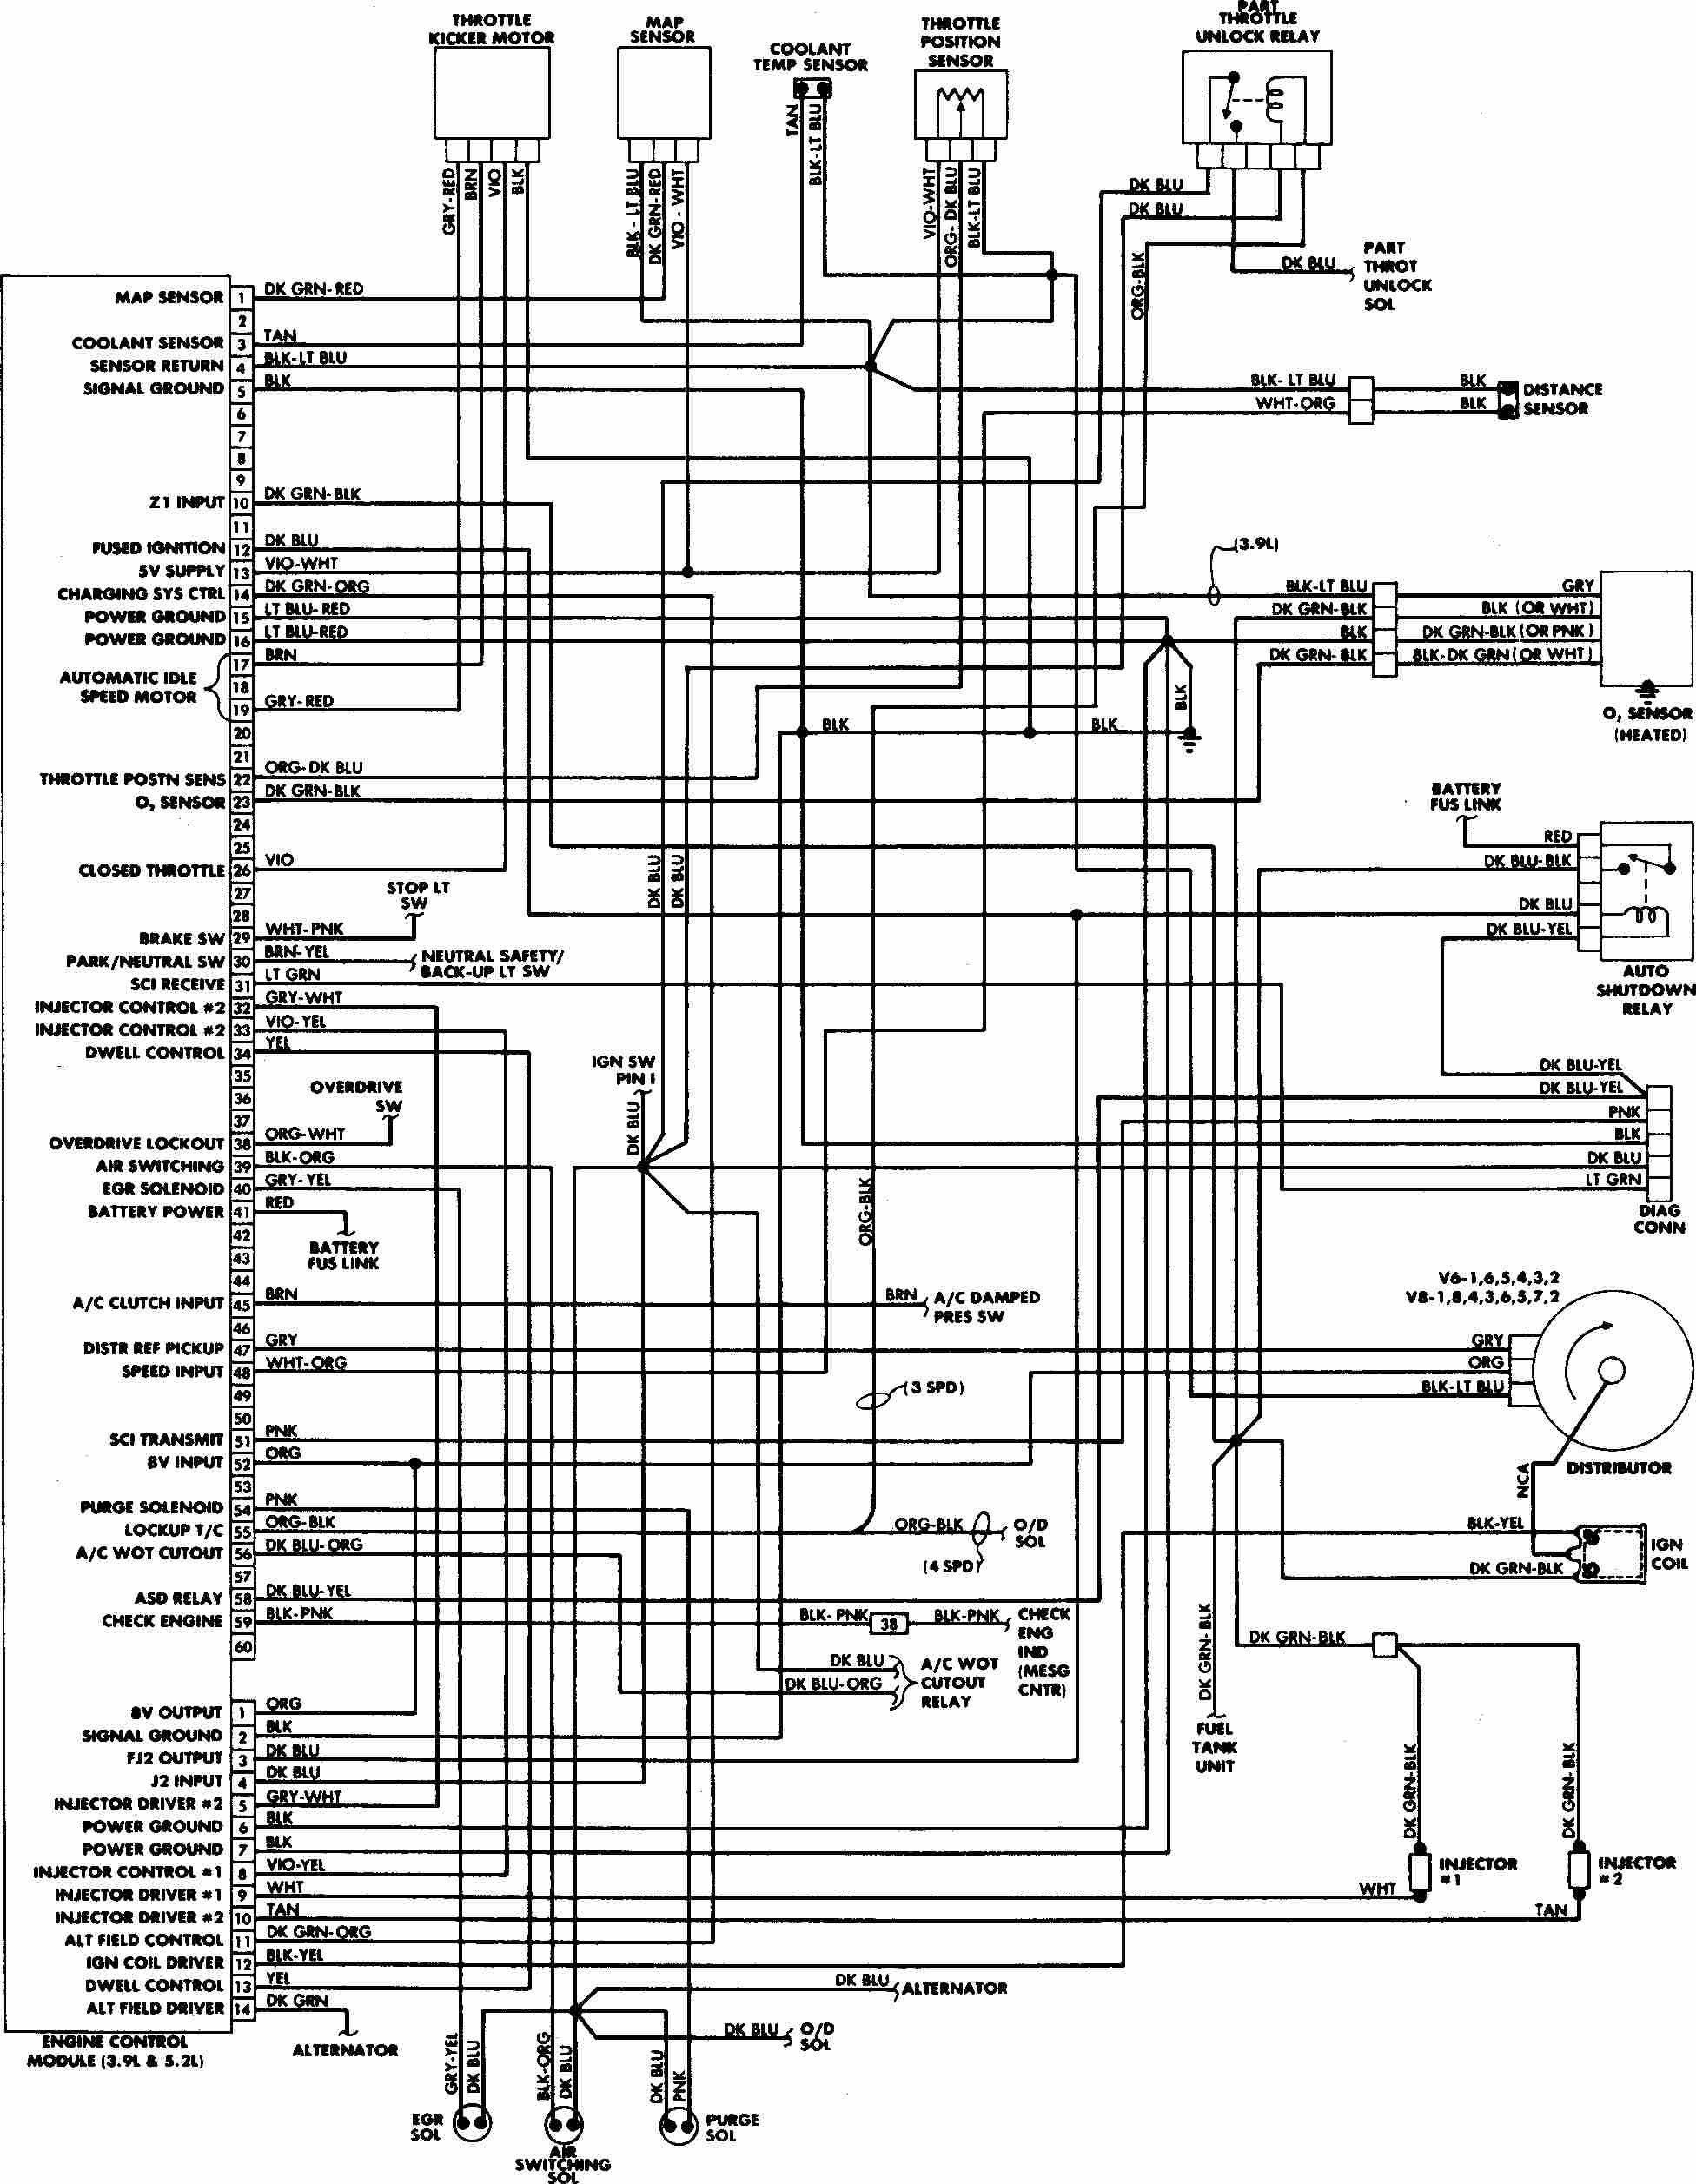 30 Unique Dodge Neon Starter Wiring Diagram | Dodge, Electrical diagram, Dodge  ram 1500 | 2002 Dodge Truck Alternator Wiring |  | Pinterest